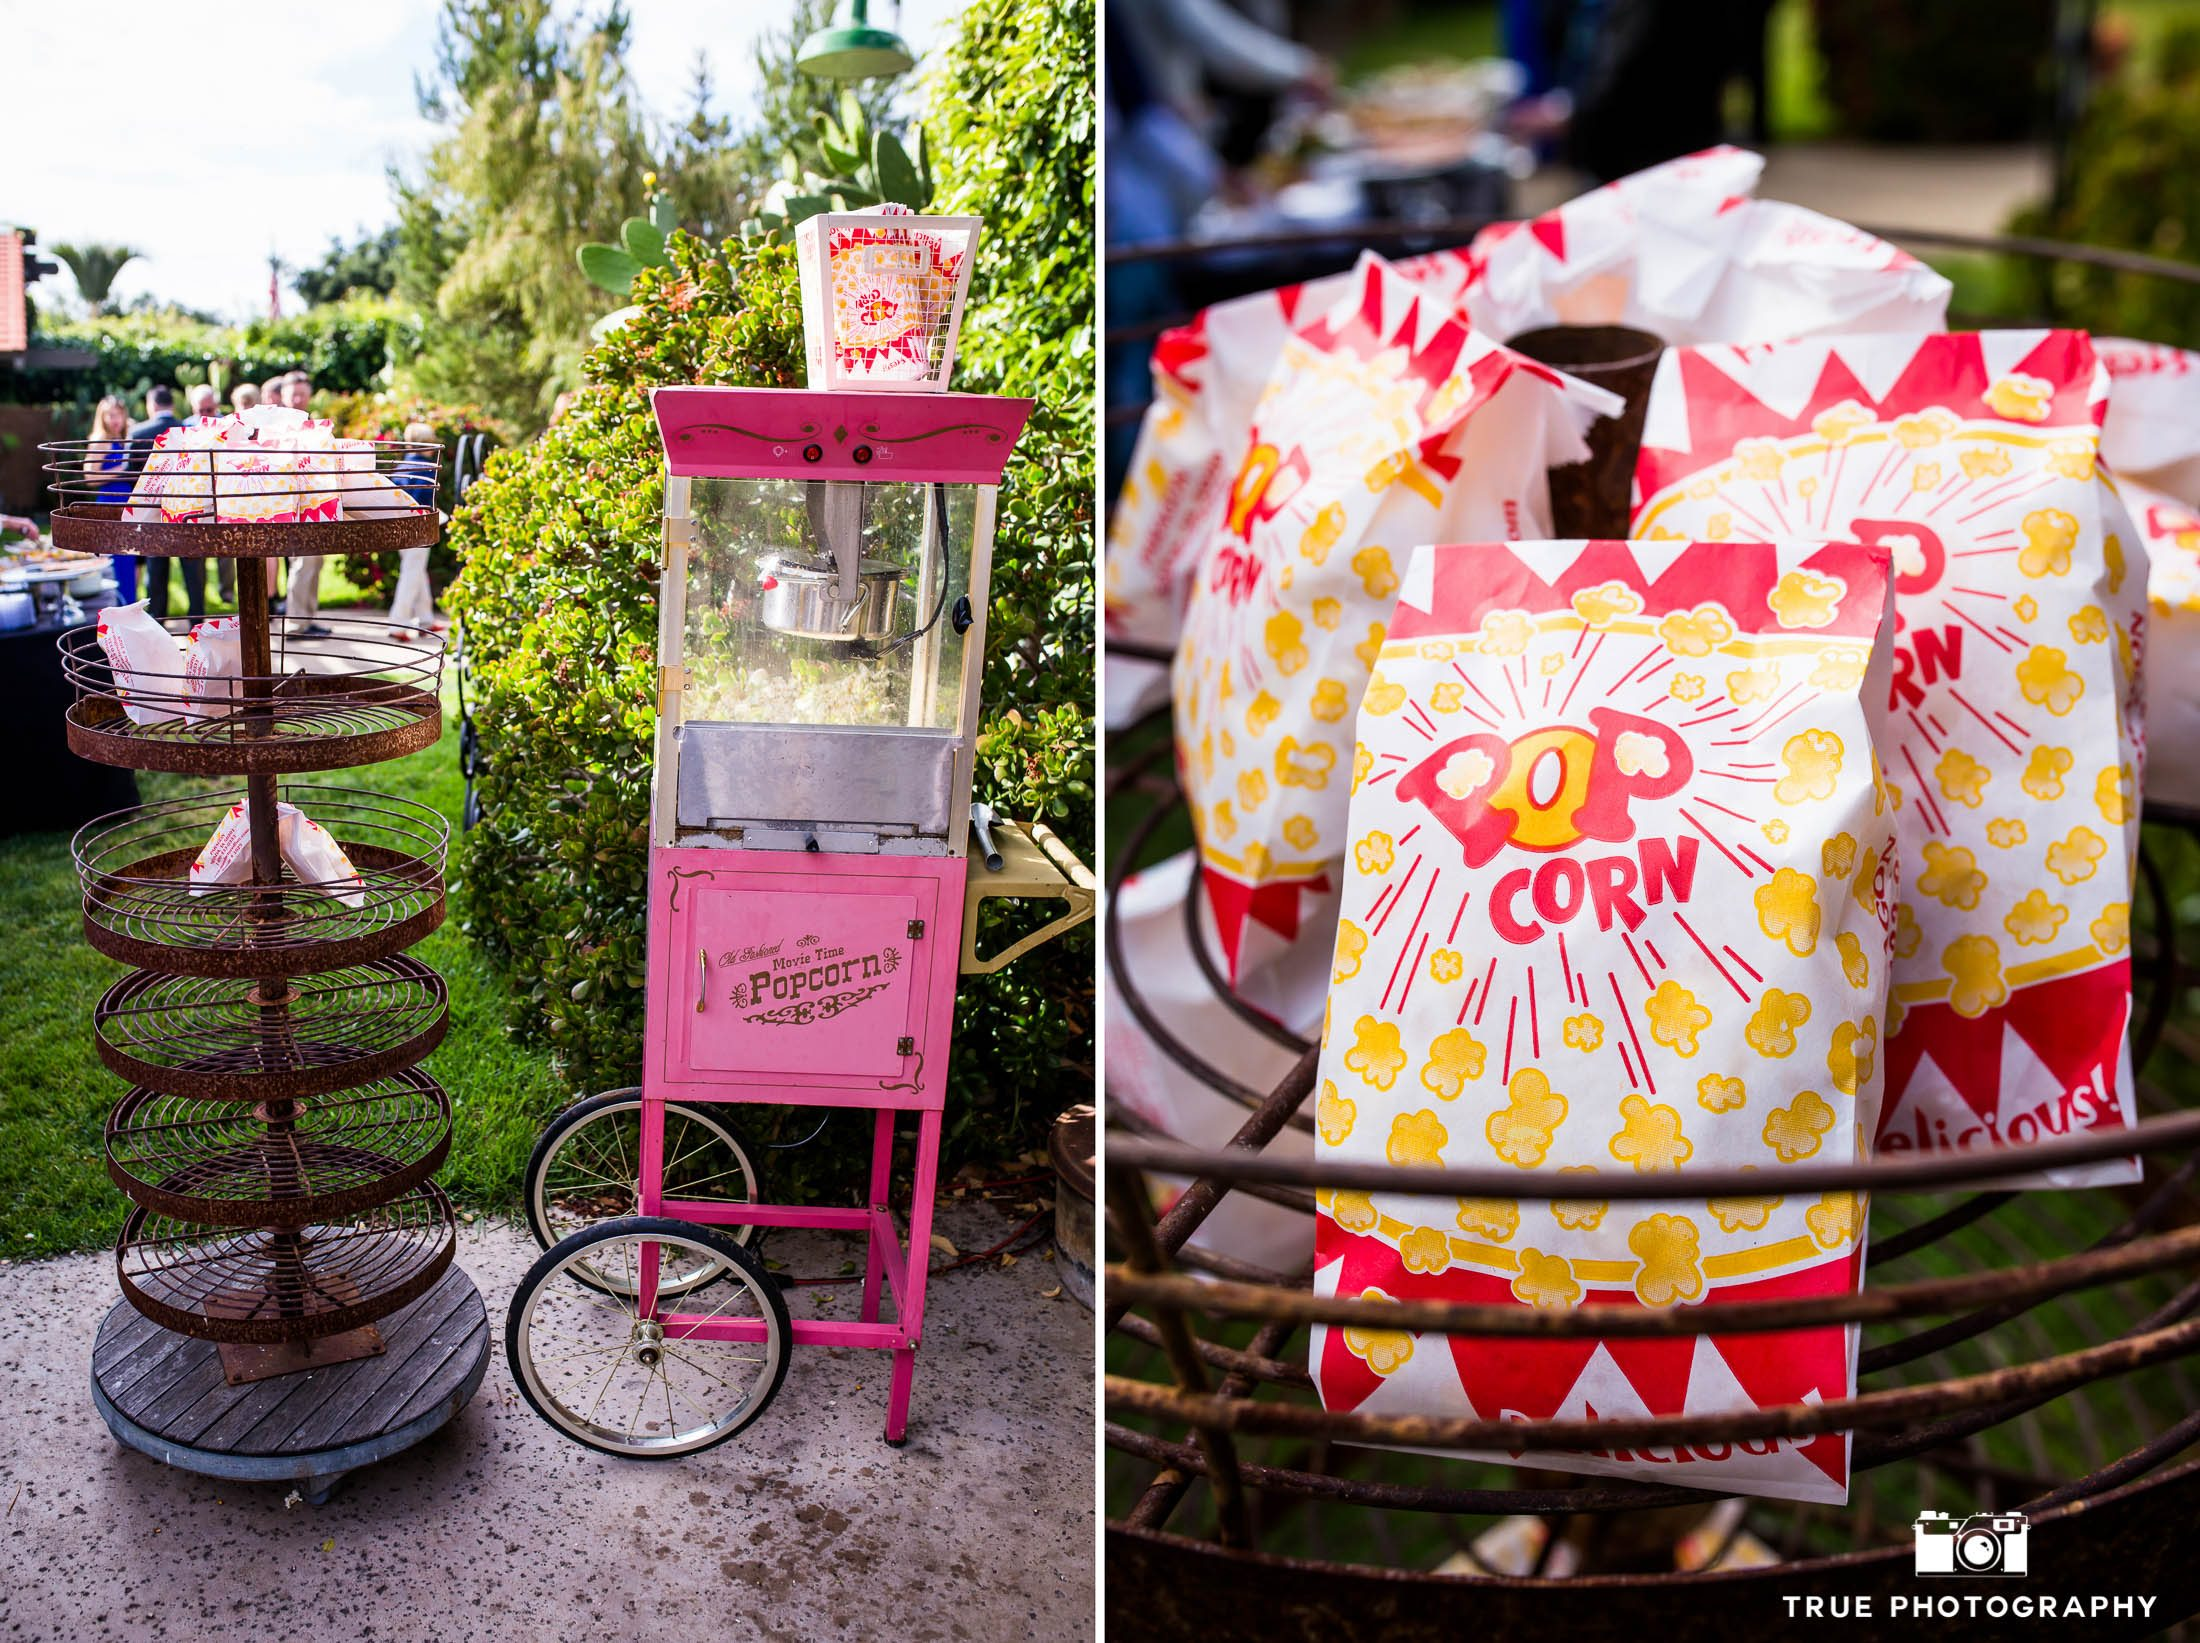 Fun and creative vintage popcorn machine during rustic outdoor wedding reception